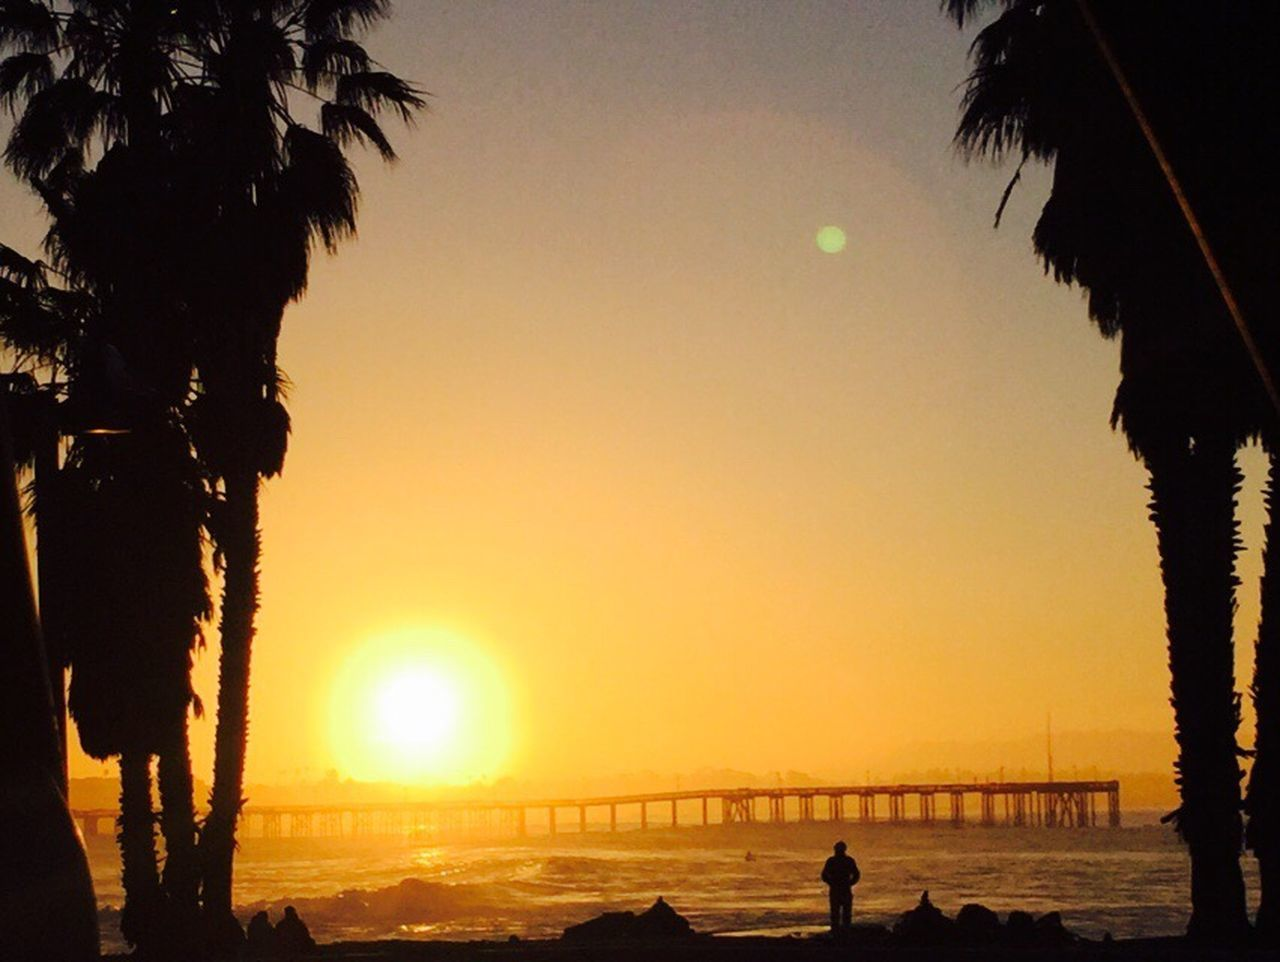 43 Golden Moments Ventura Waves Beach Photography Sunset Palm Trees Awesome Promenade Southern California Coast California Nature Photography Life Is A Beach Times To Remember Serenity Downtown Peir Wooden